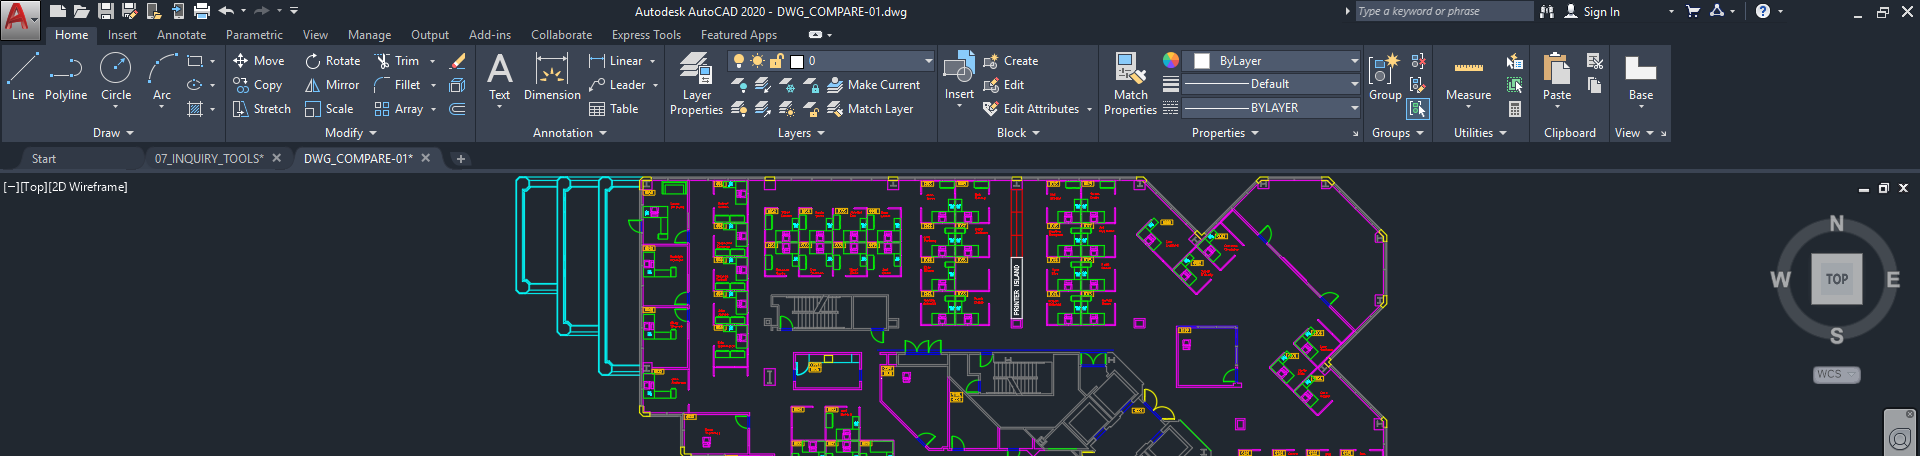 What's New in AutoCAD 2020 - 7 Significant Changes | Red Vector